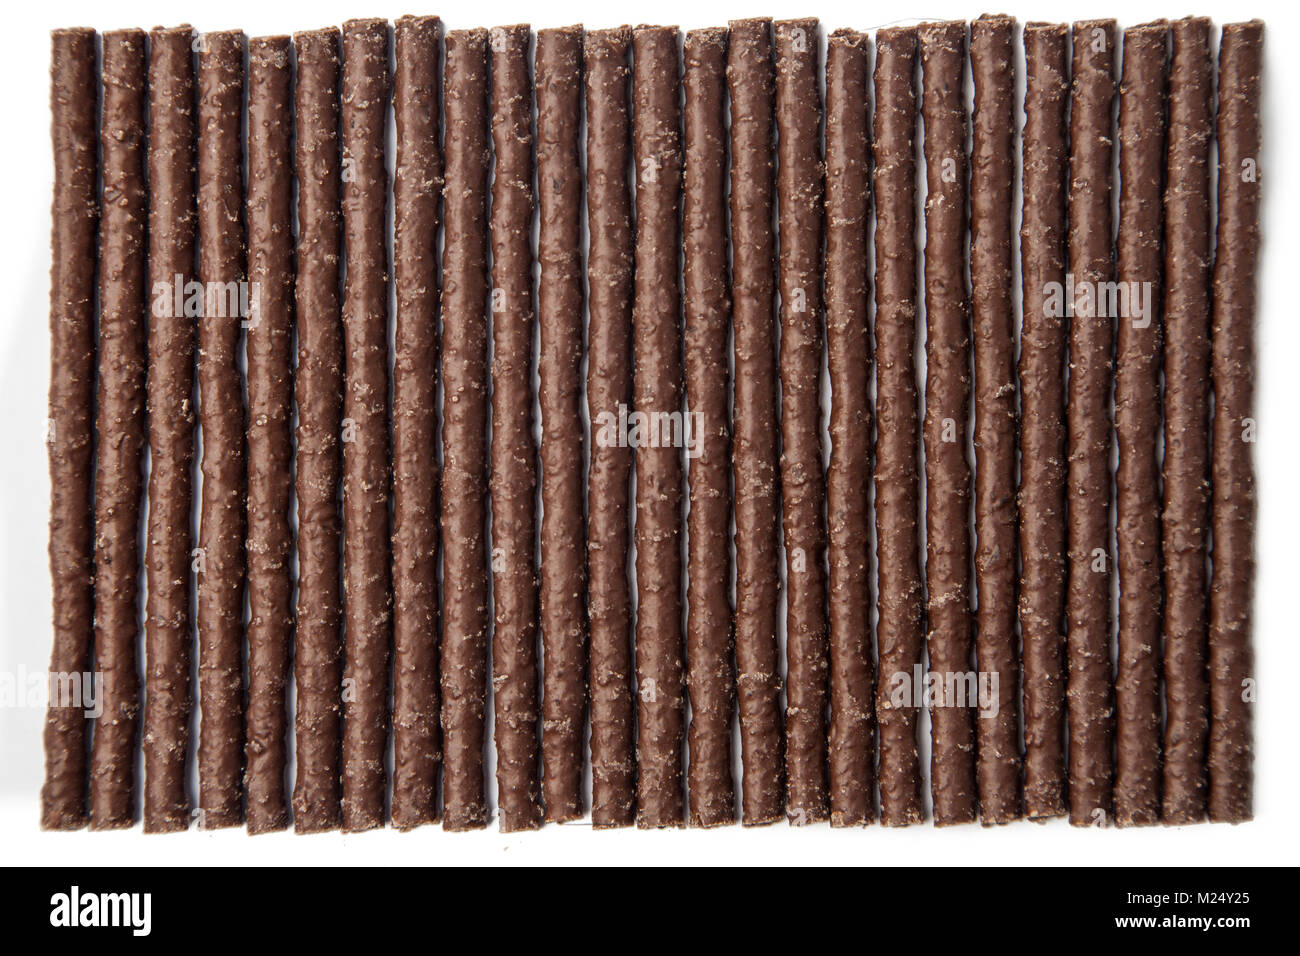 Chocolate Flavoured Stick Candy arranged side by side - Stock Image